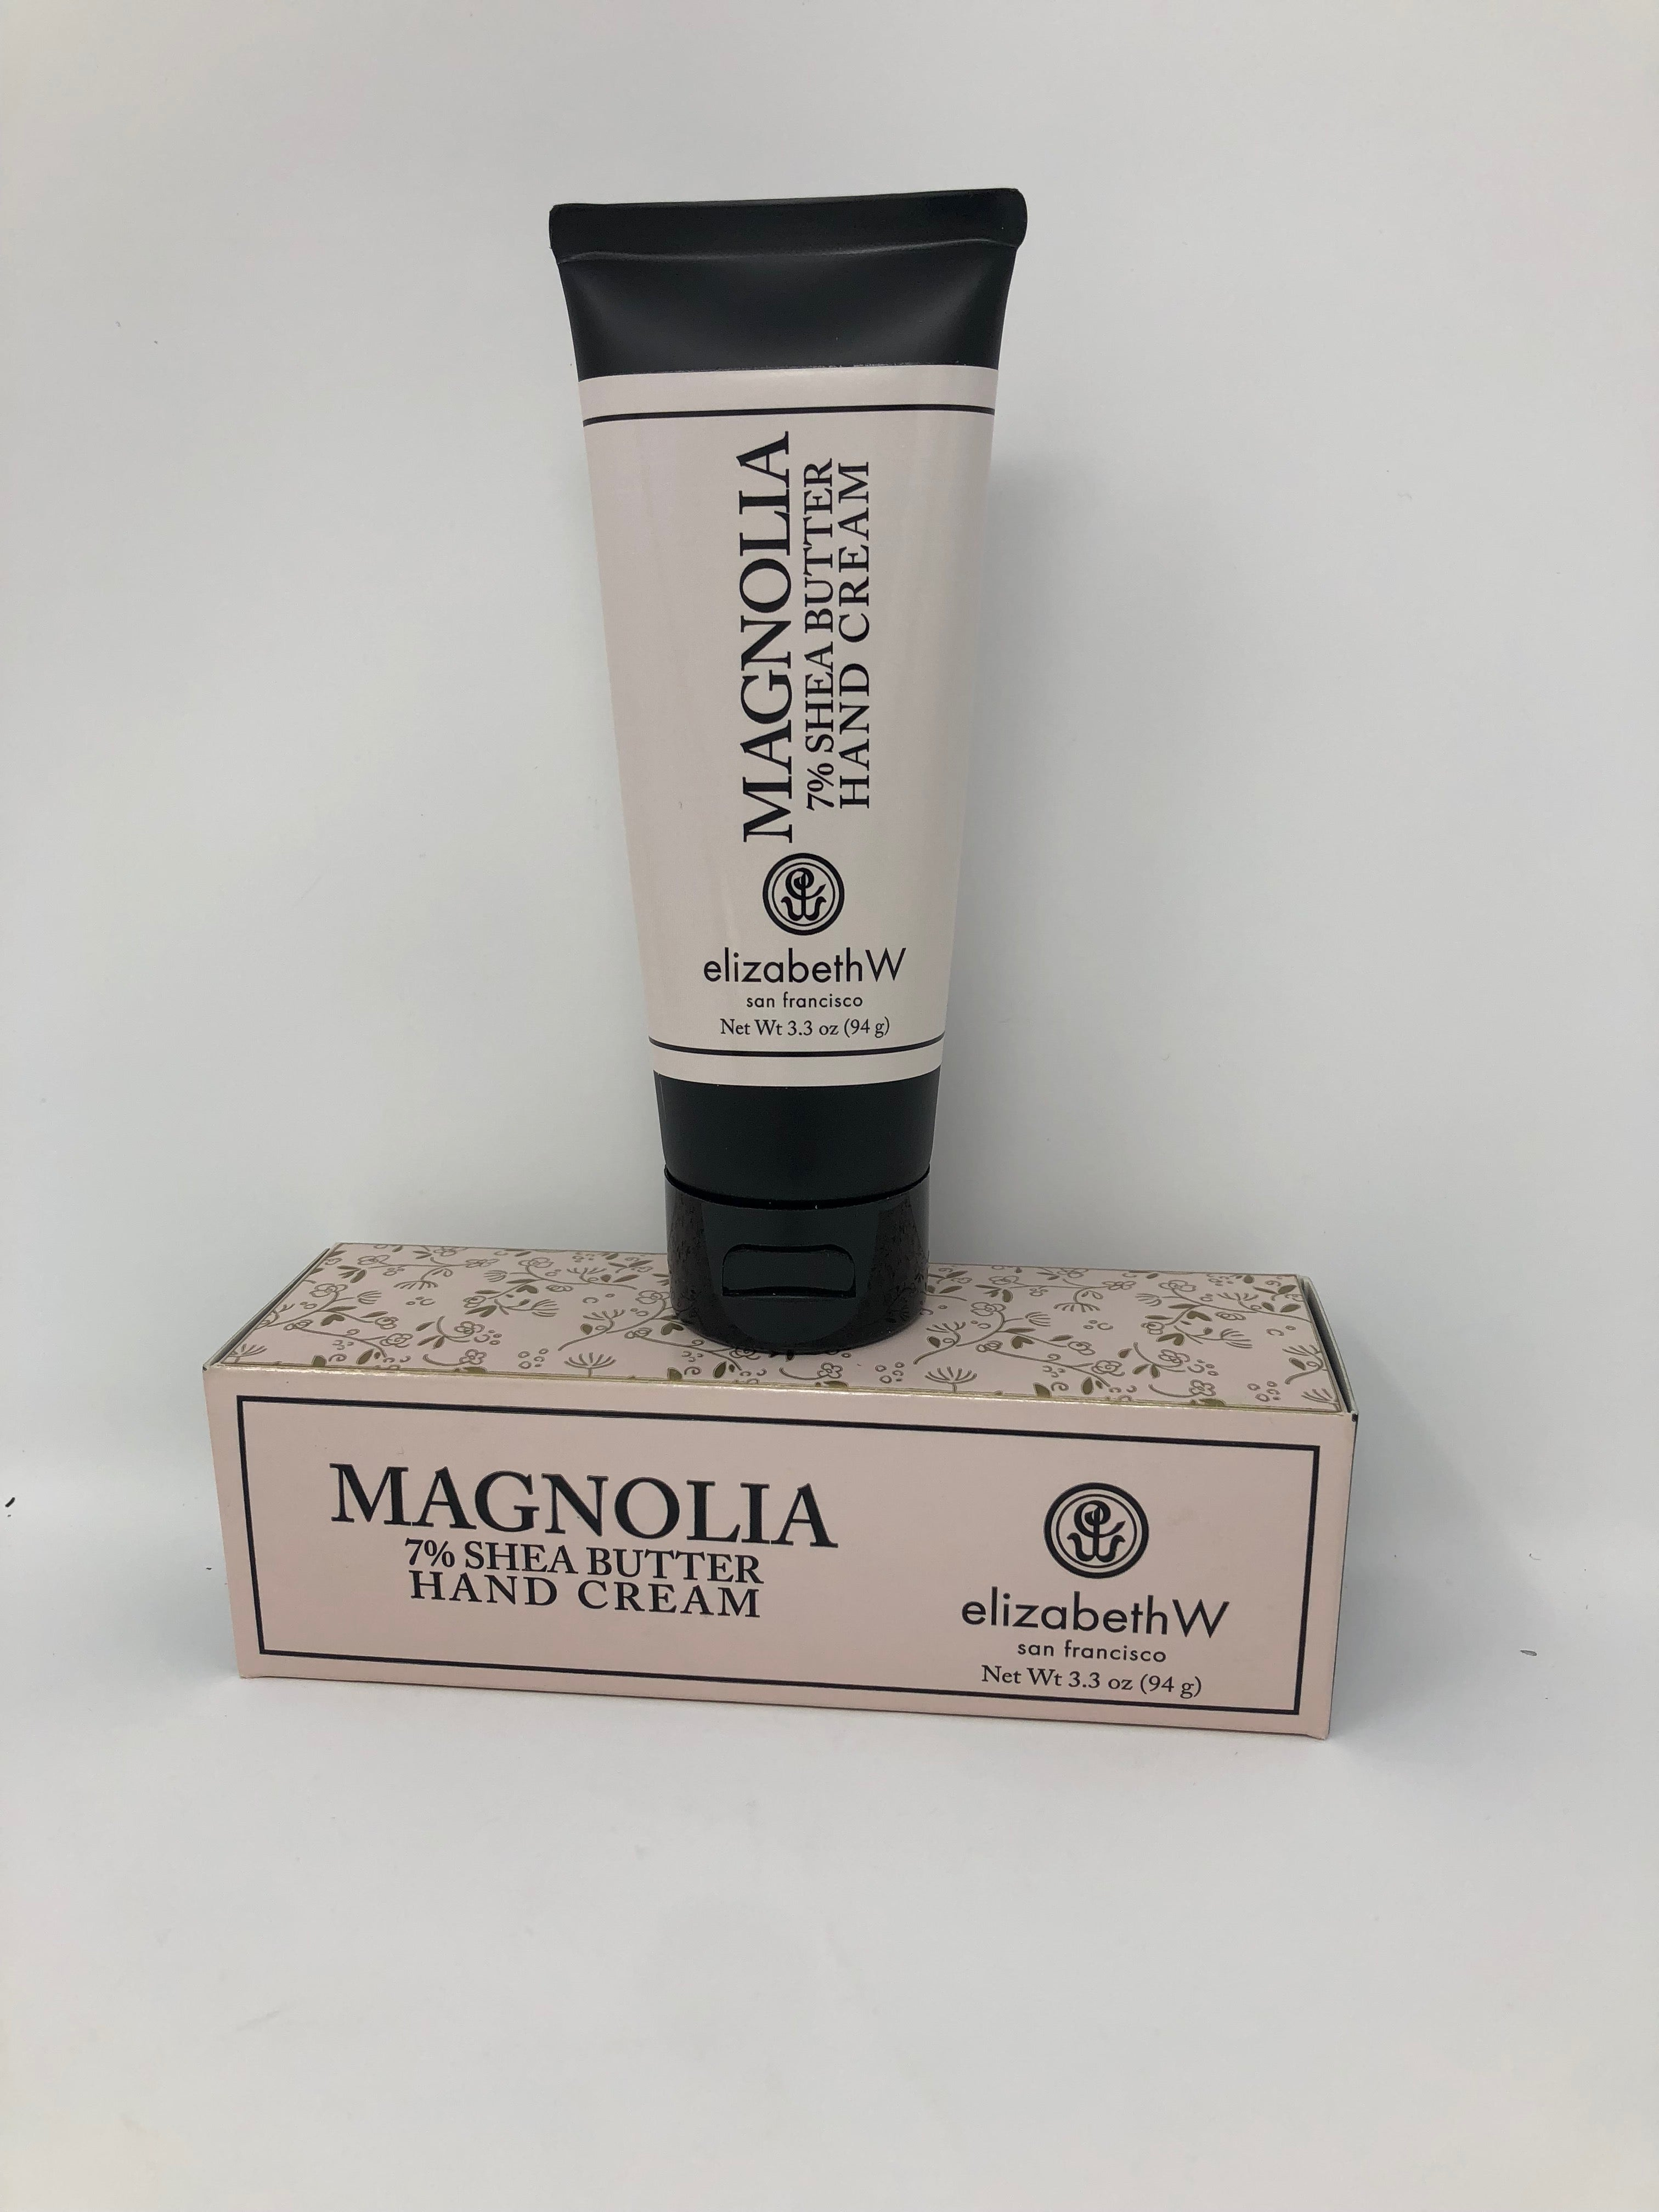 Magnolia Shea Butter Hand Cream (3.3 oz)